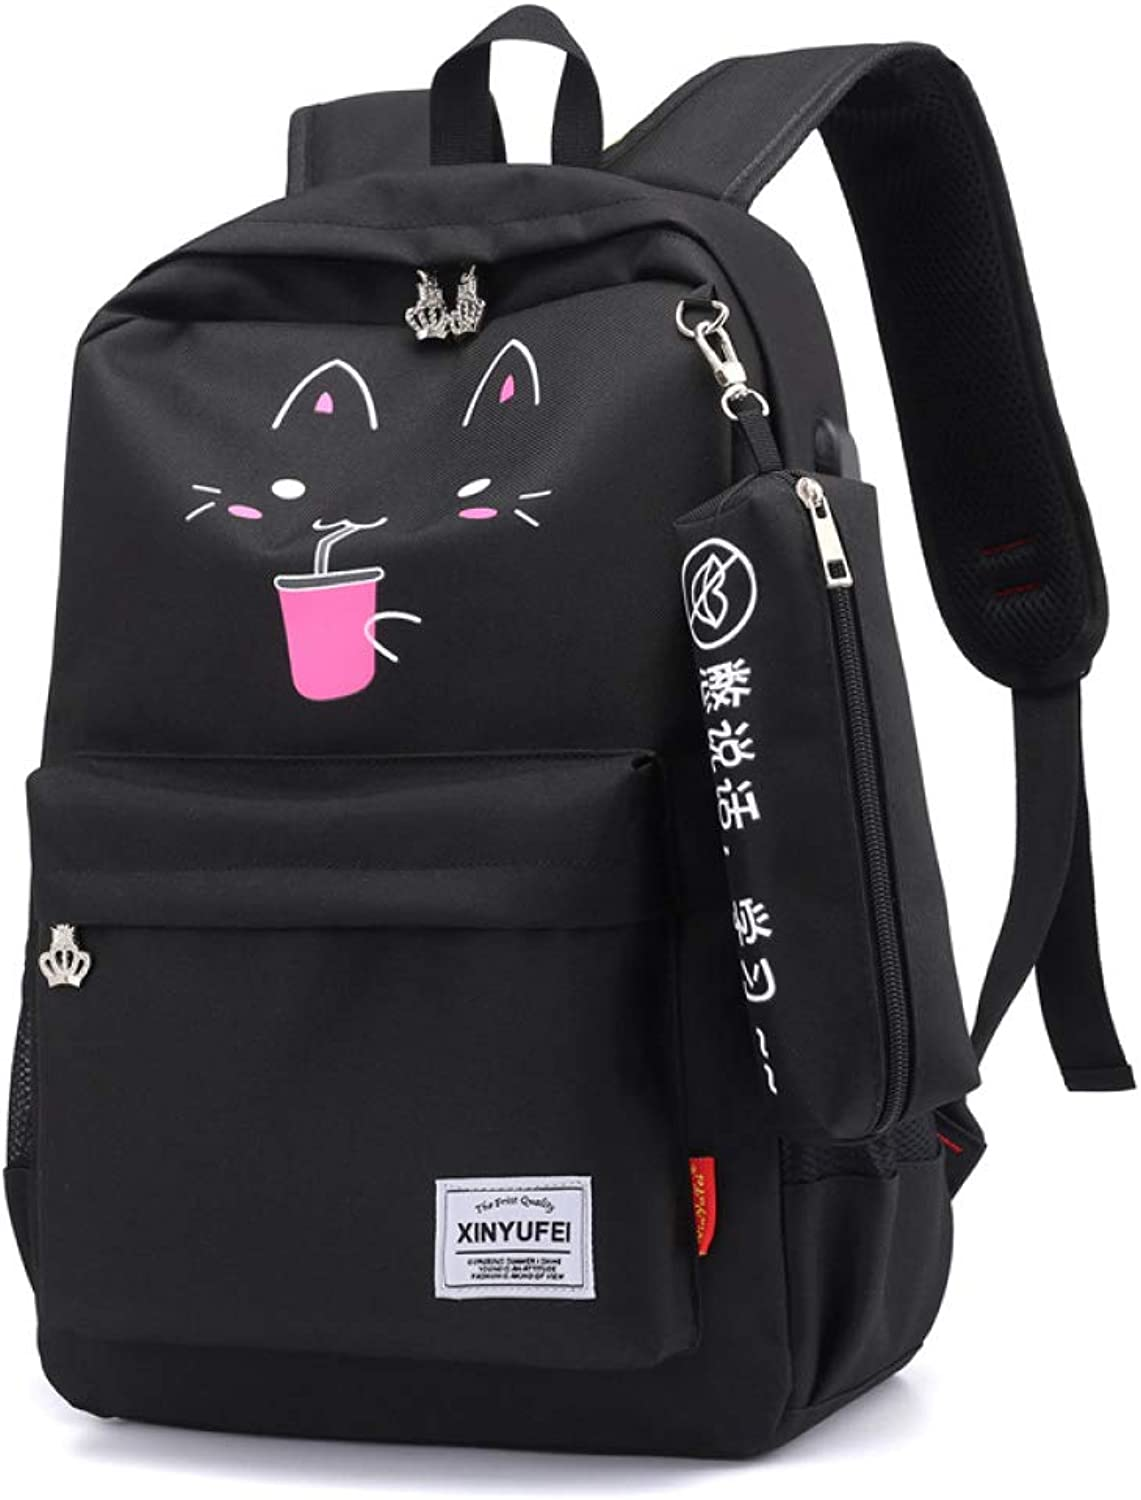 Quality Ladies and Girls Backpack,Campus Junior High School Student Bag,Oxford Textile Lightweight Large Capacity